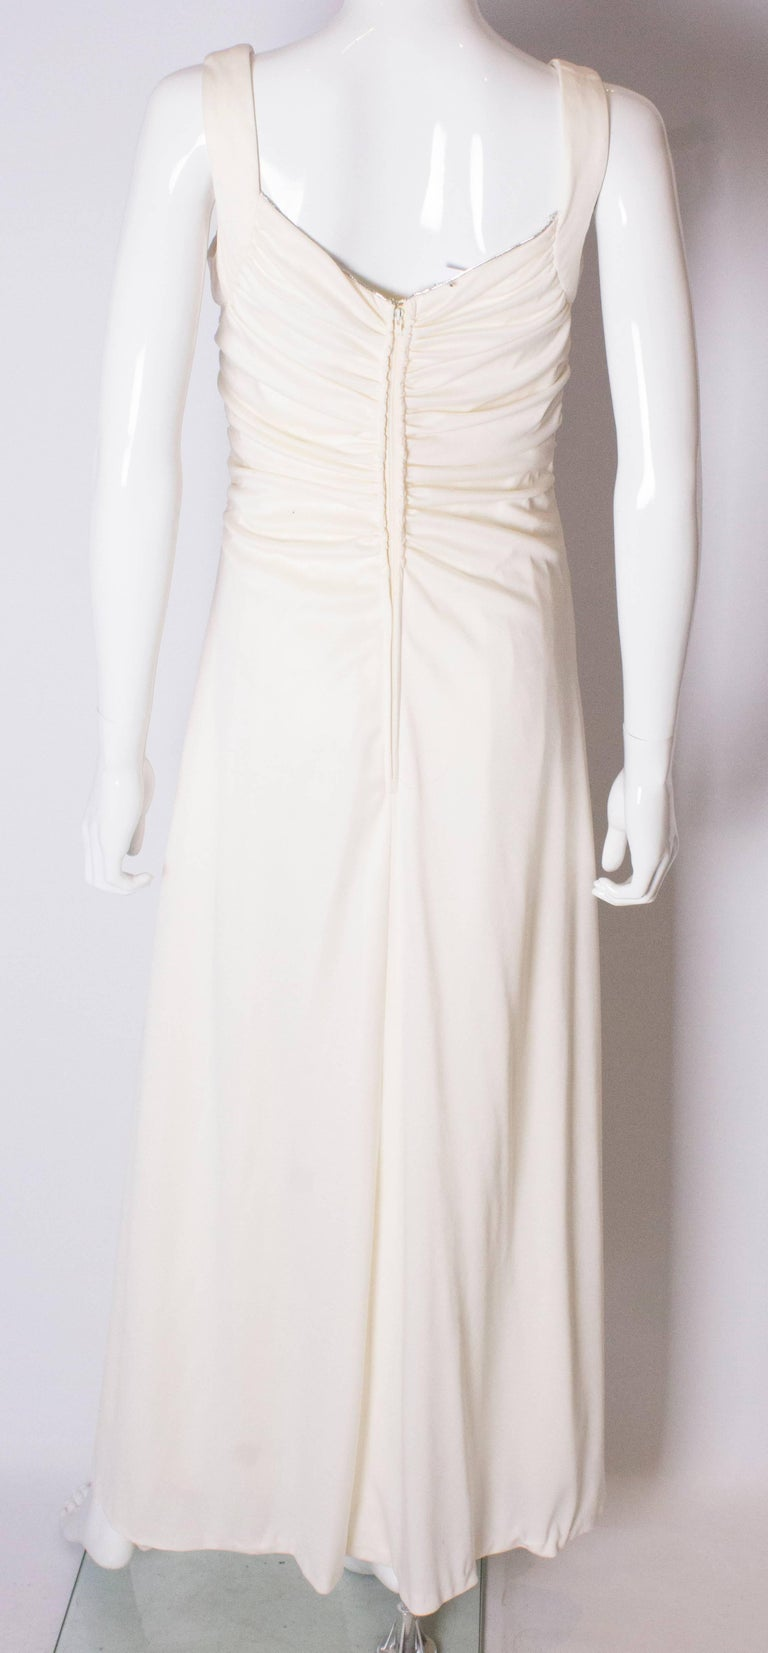 A Vintage 1970s cream evening dress by Maddison Avenue London  For Sale 3